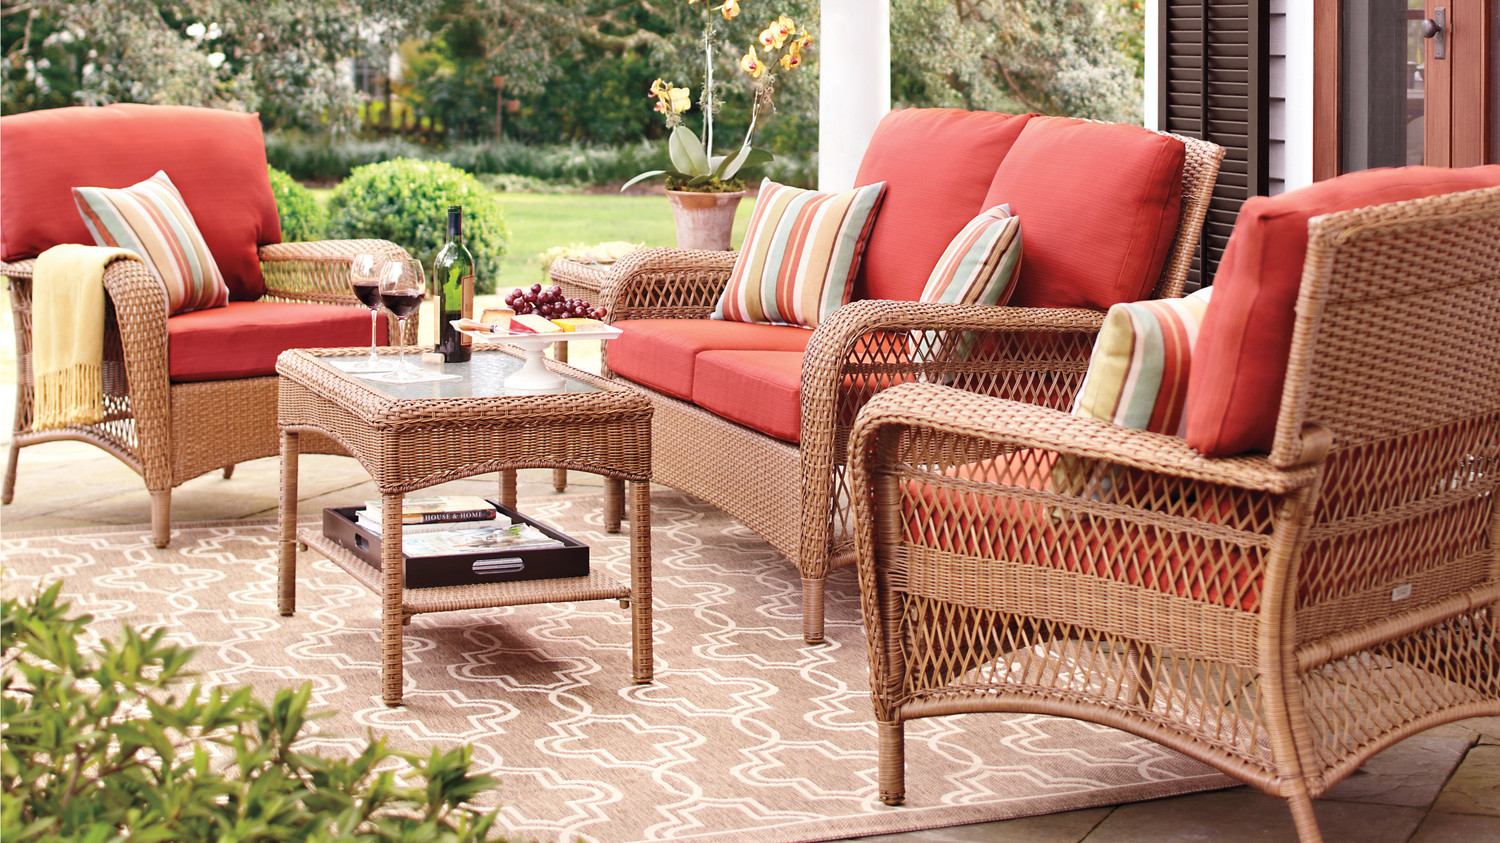 Great Looking To Refresh Your Patio? Here Are 3 Looks To Try. | Martha Stewart